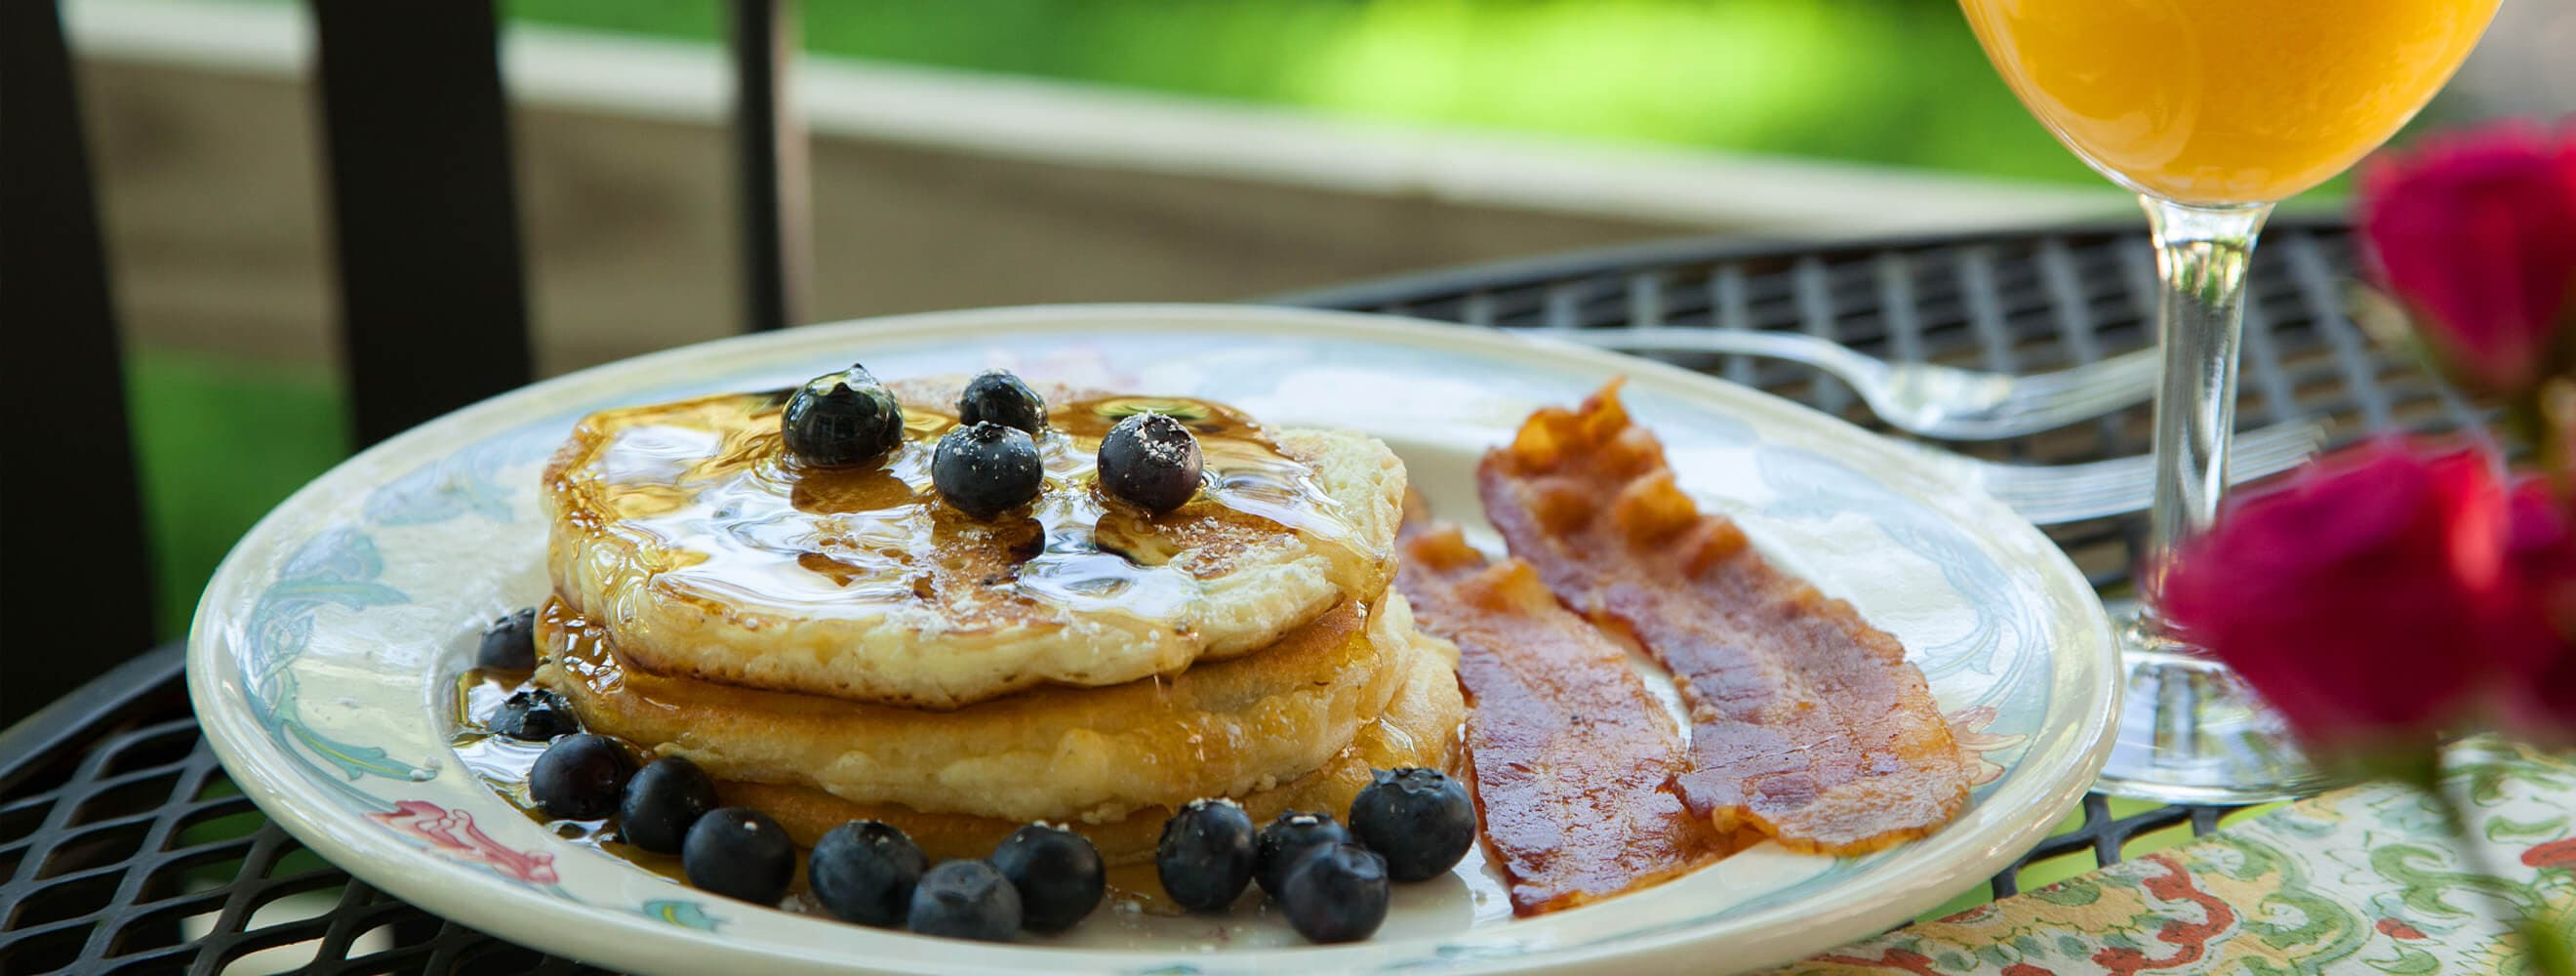 blueberry pancakes with orange juice on outdoor dining table